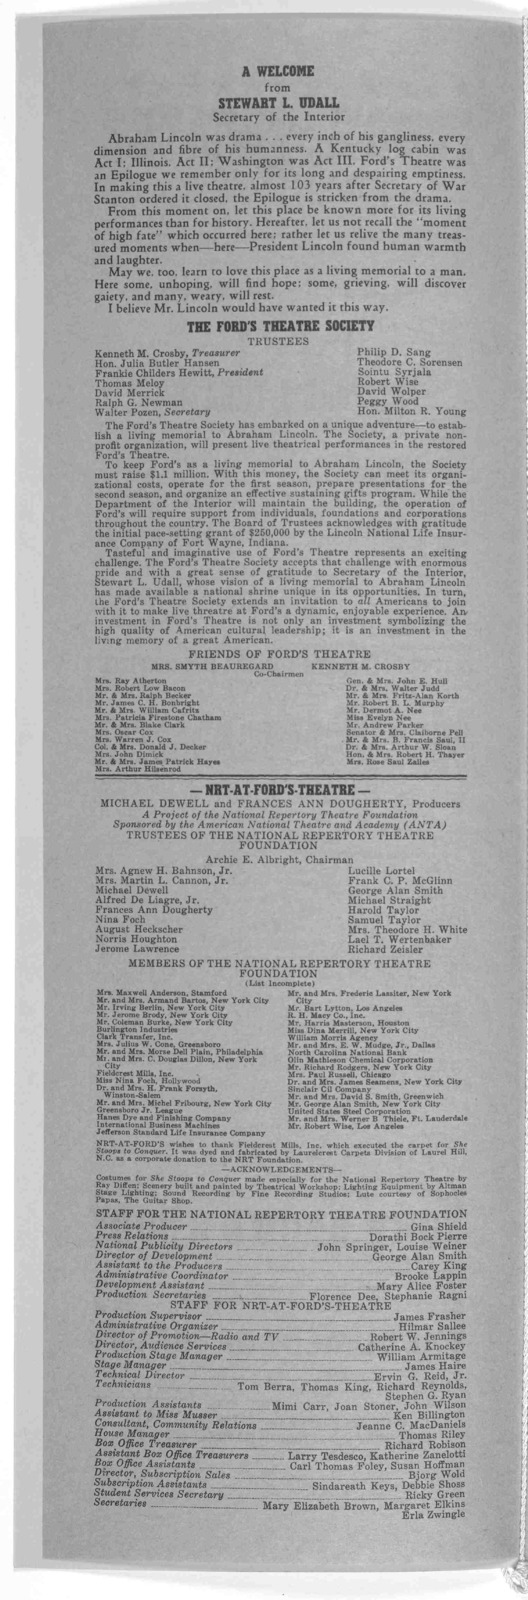 ... Ford's Theatre Society presents ... Oliver Goldmisth's lusty masterpiece ... She stoops to conquer, or, the Mistakes of a night. [Wash.] NRT-at-Ford's Theatre, 1968.